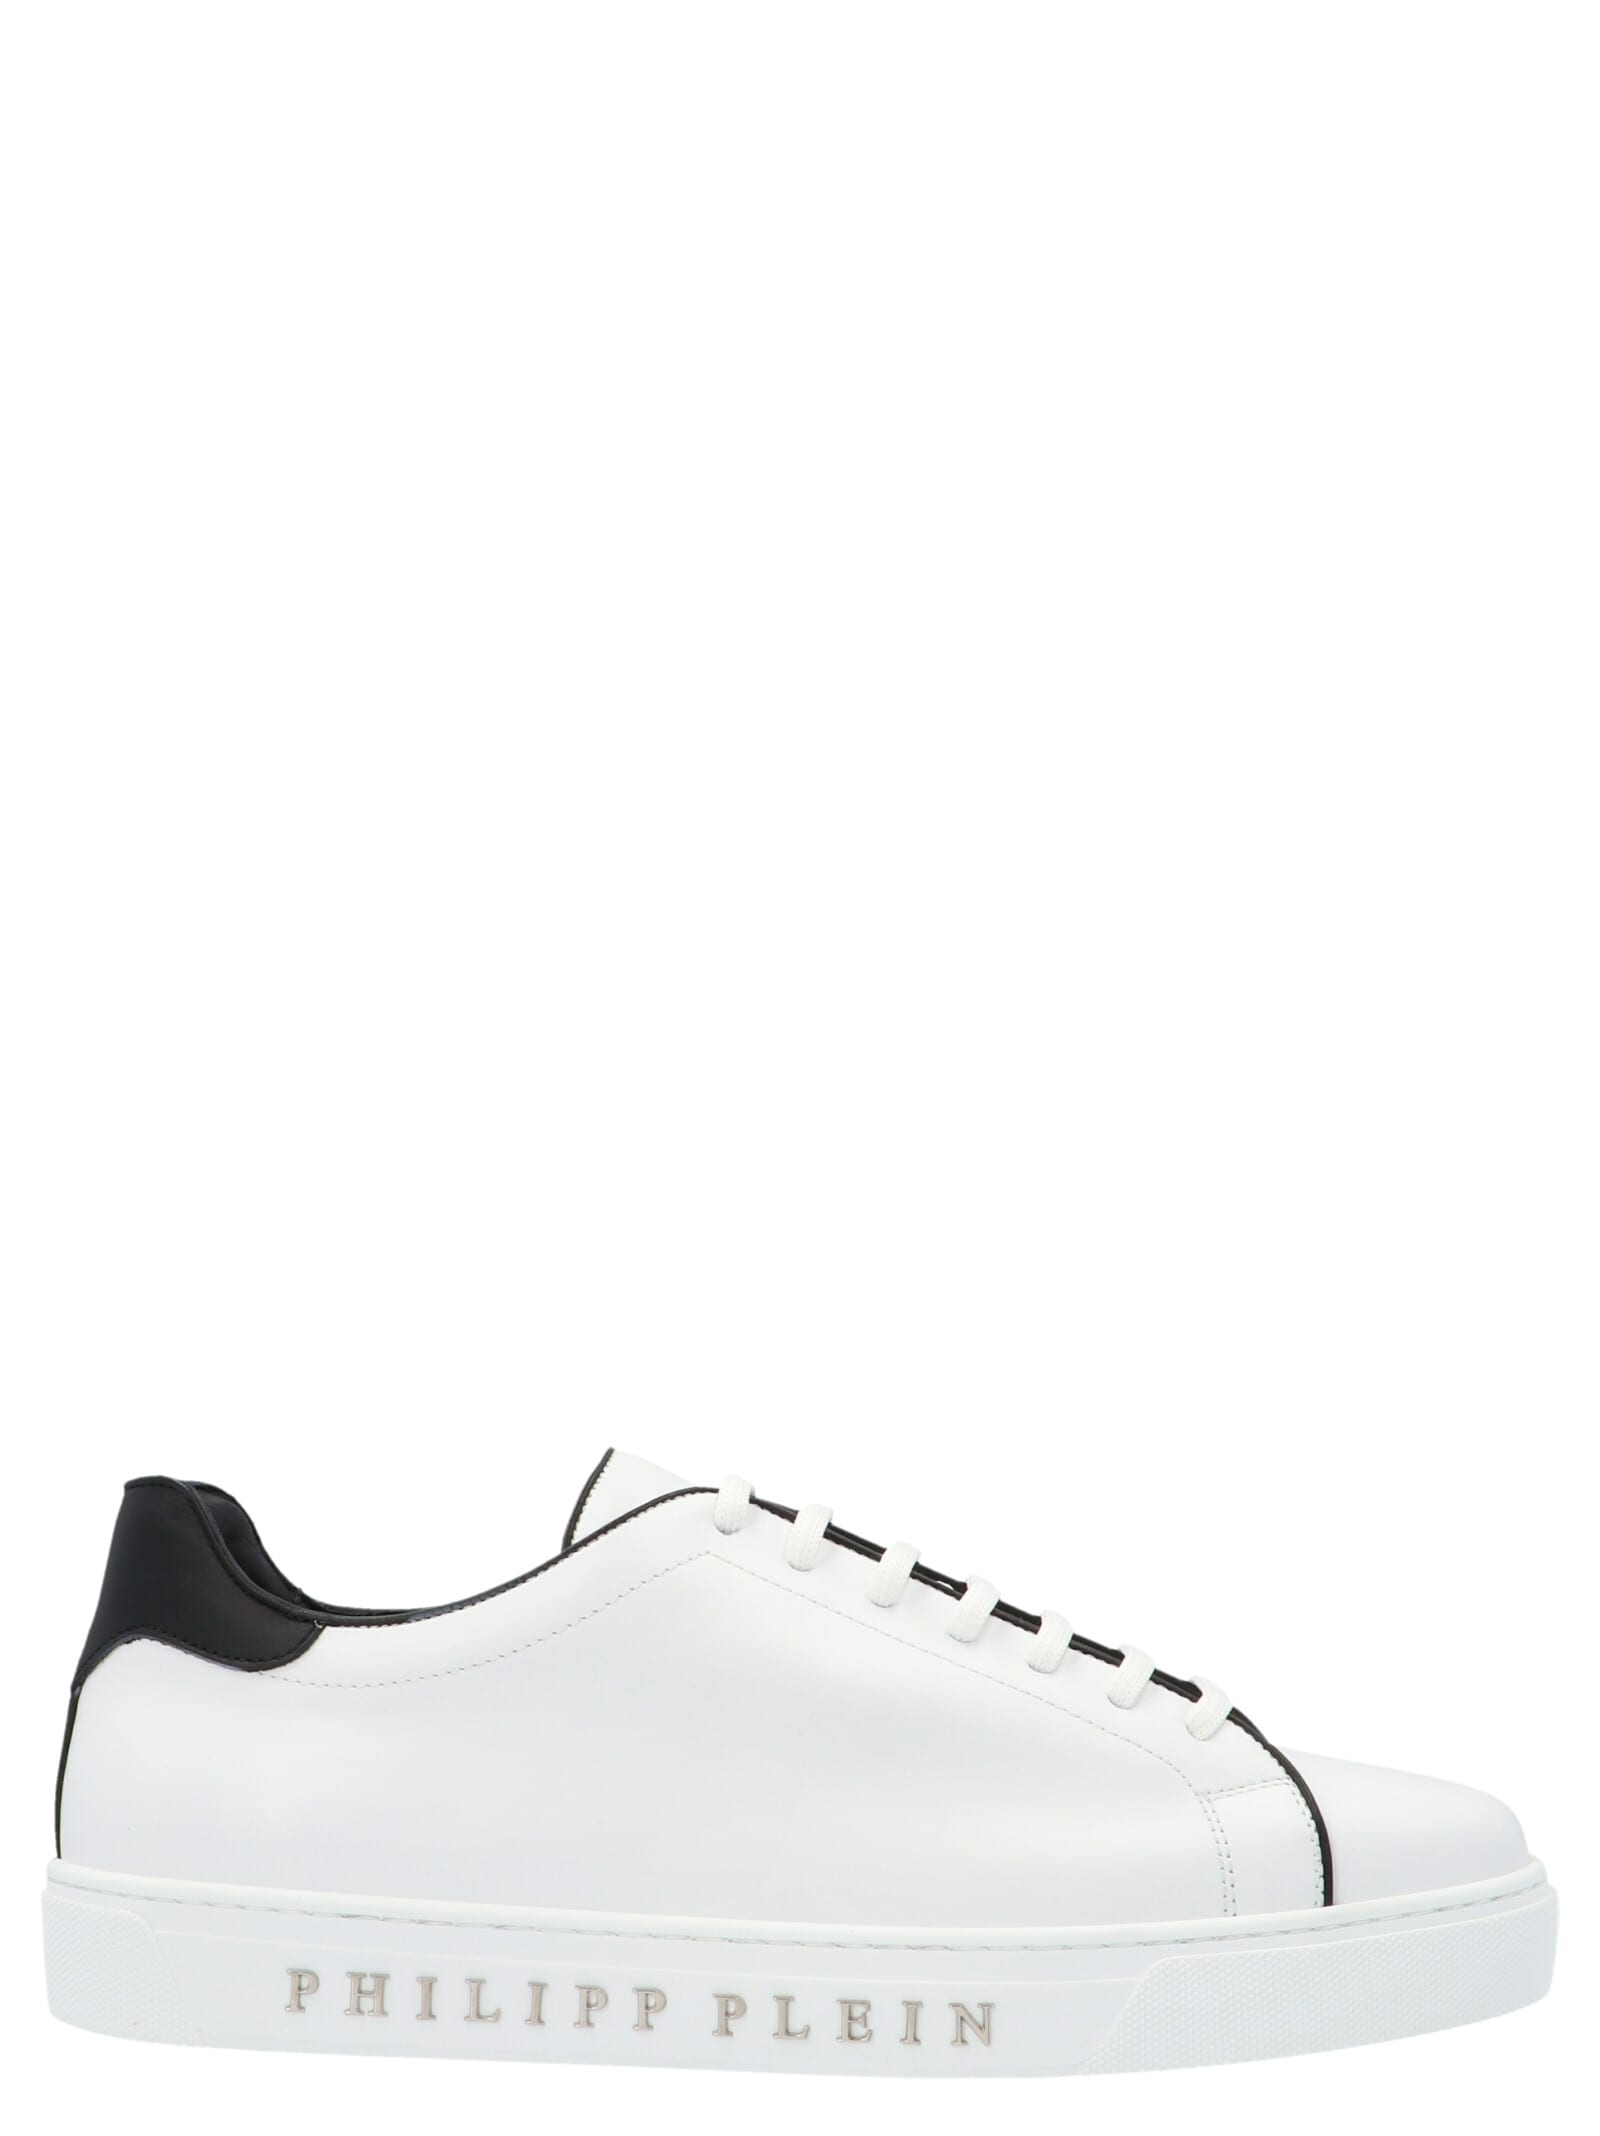 Philipp Plein Sneakers ISTITUTIONAL SHOES